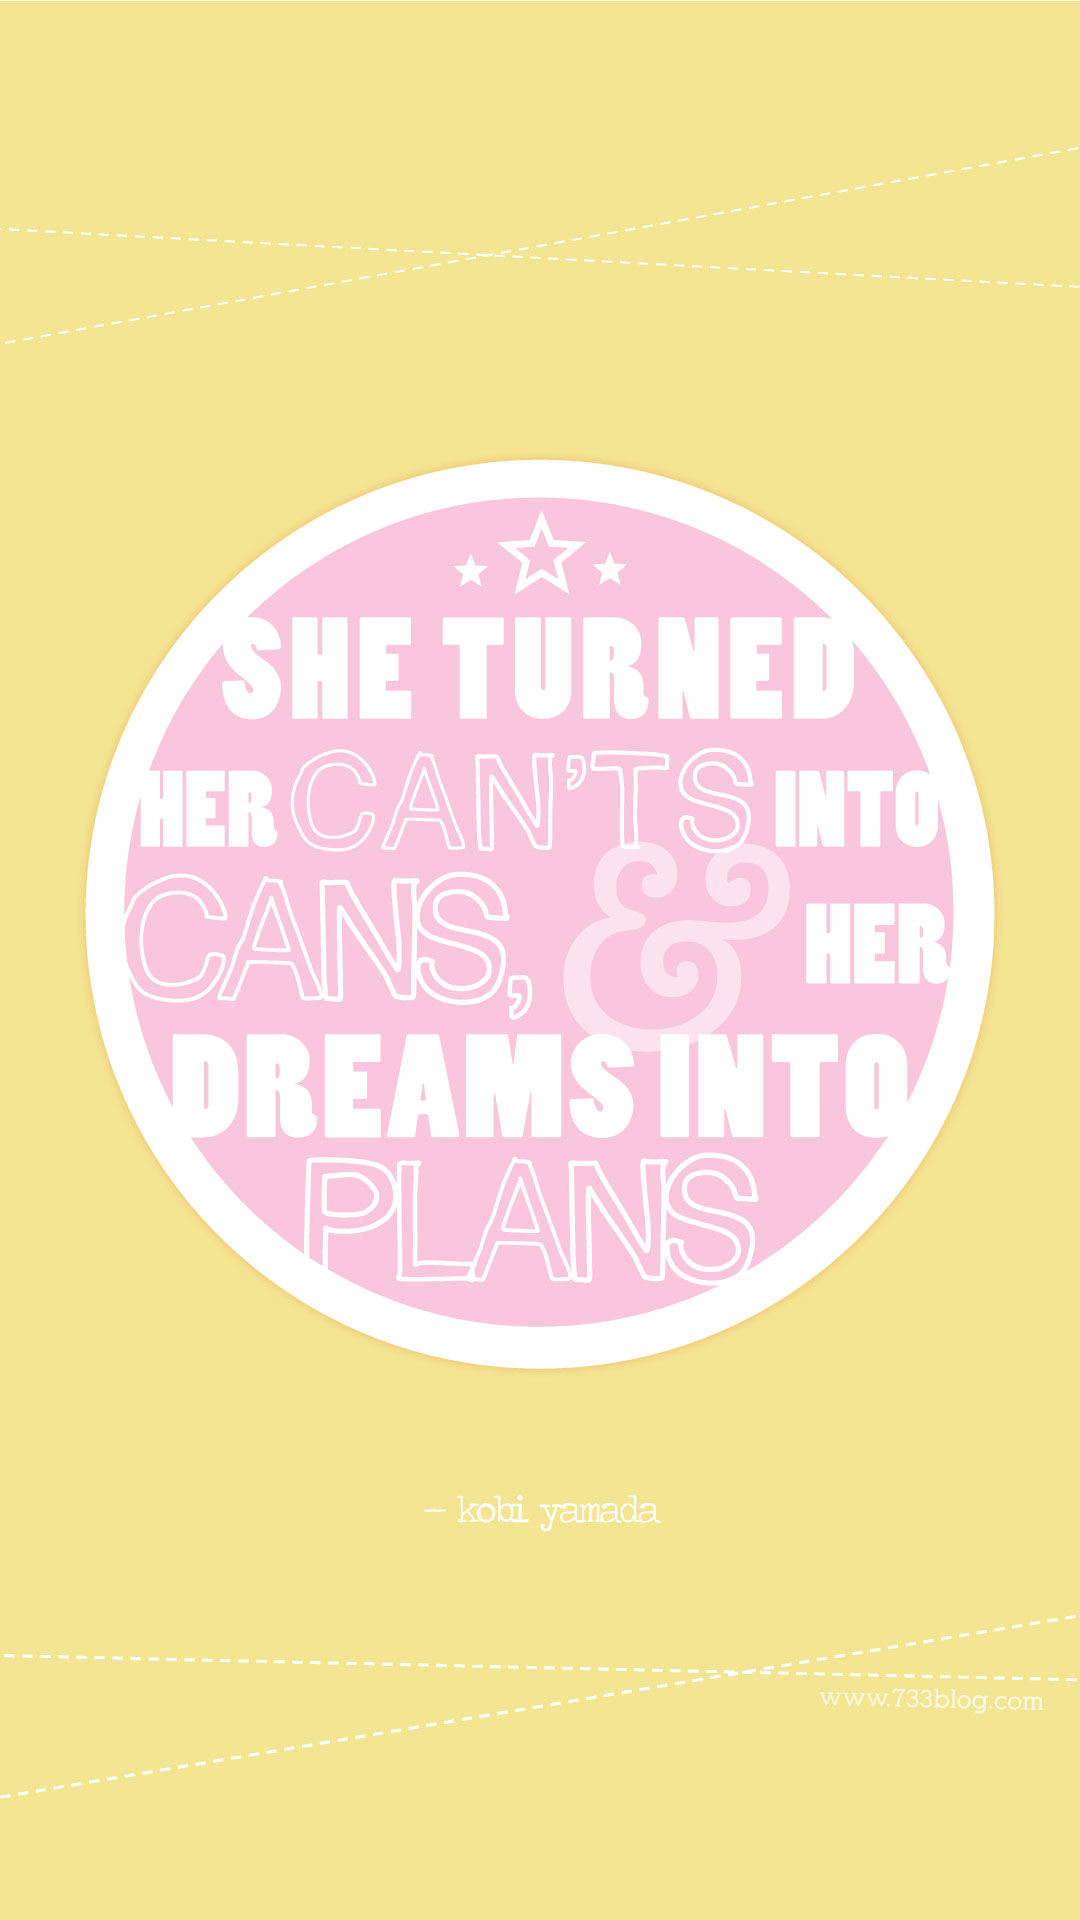 She turned her can'ts into cans and her dreams into plans iPhone Wallpaper